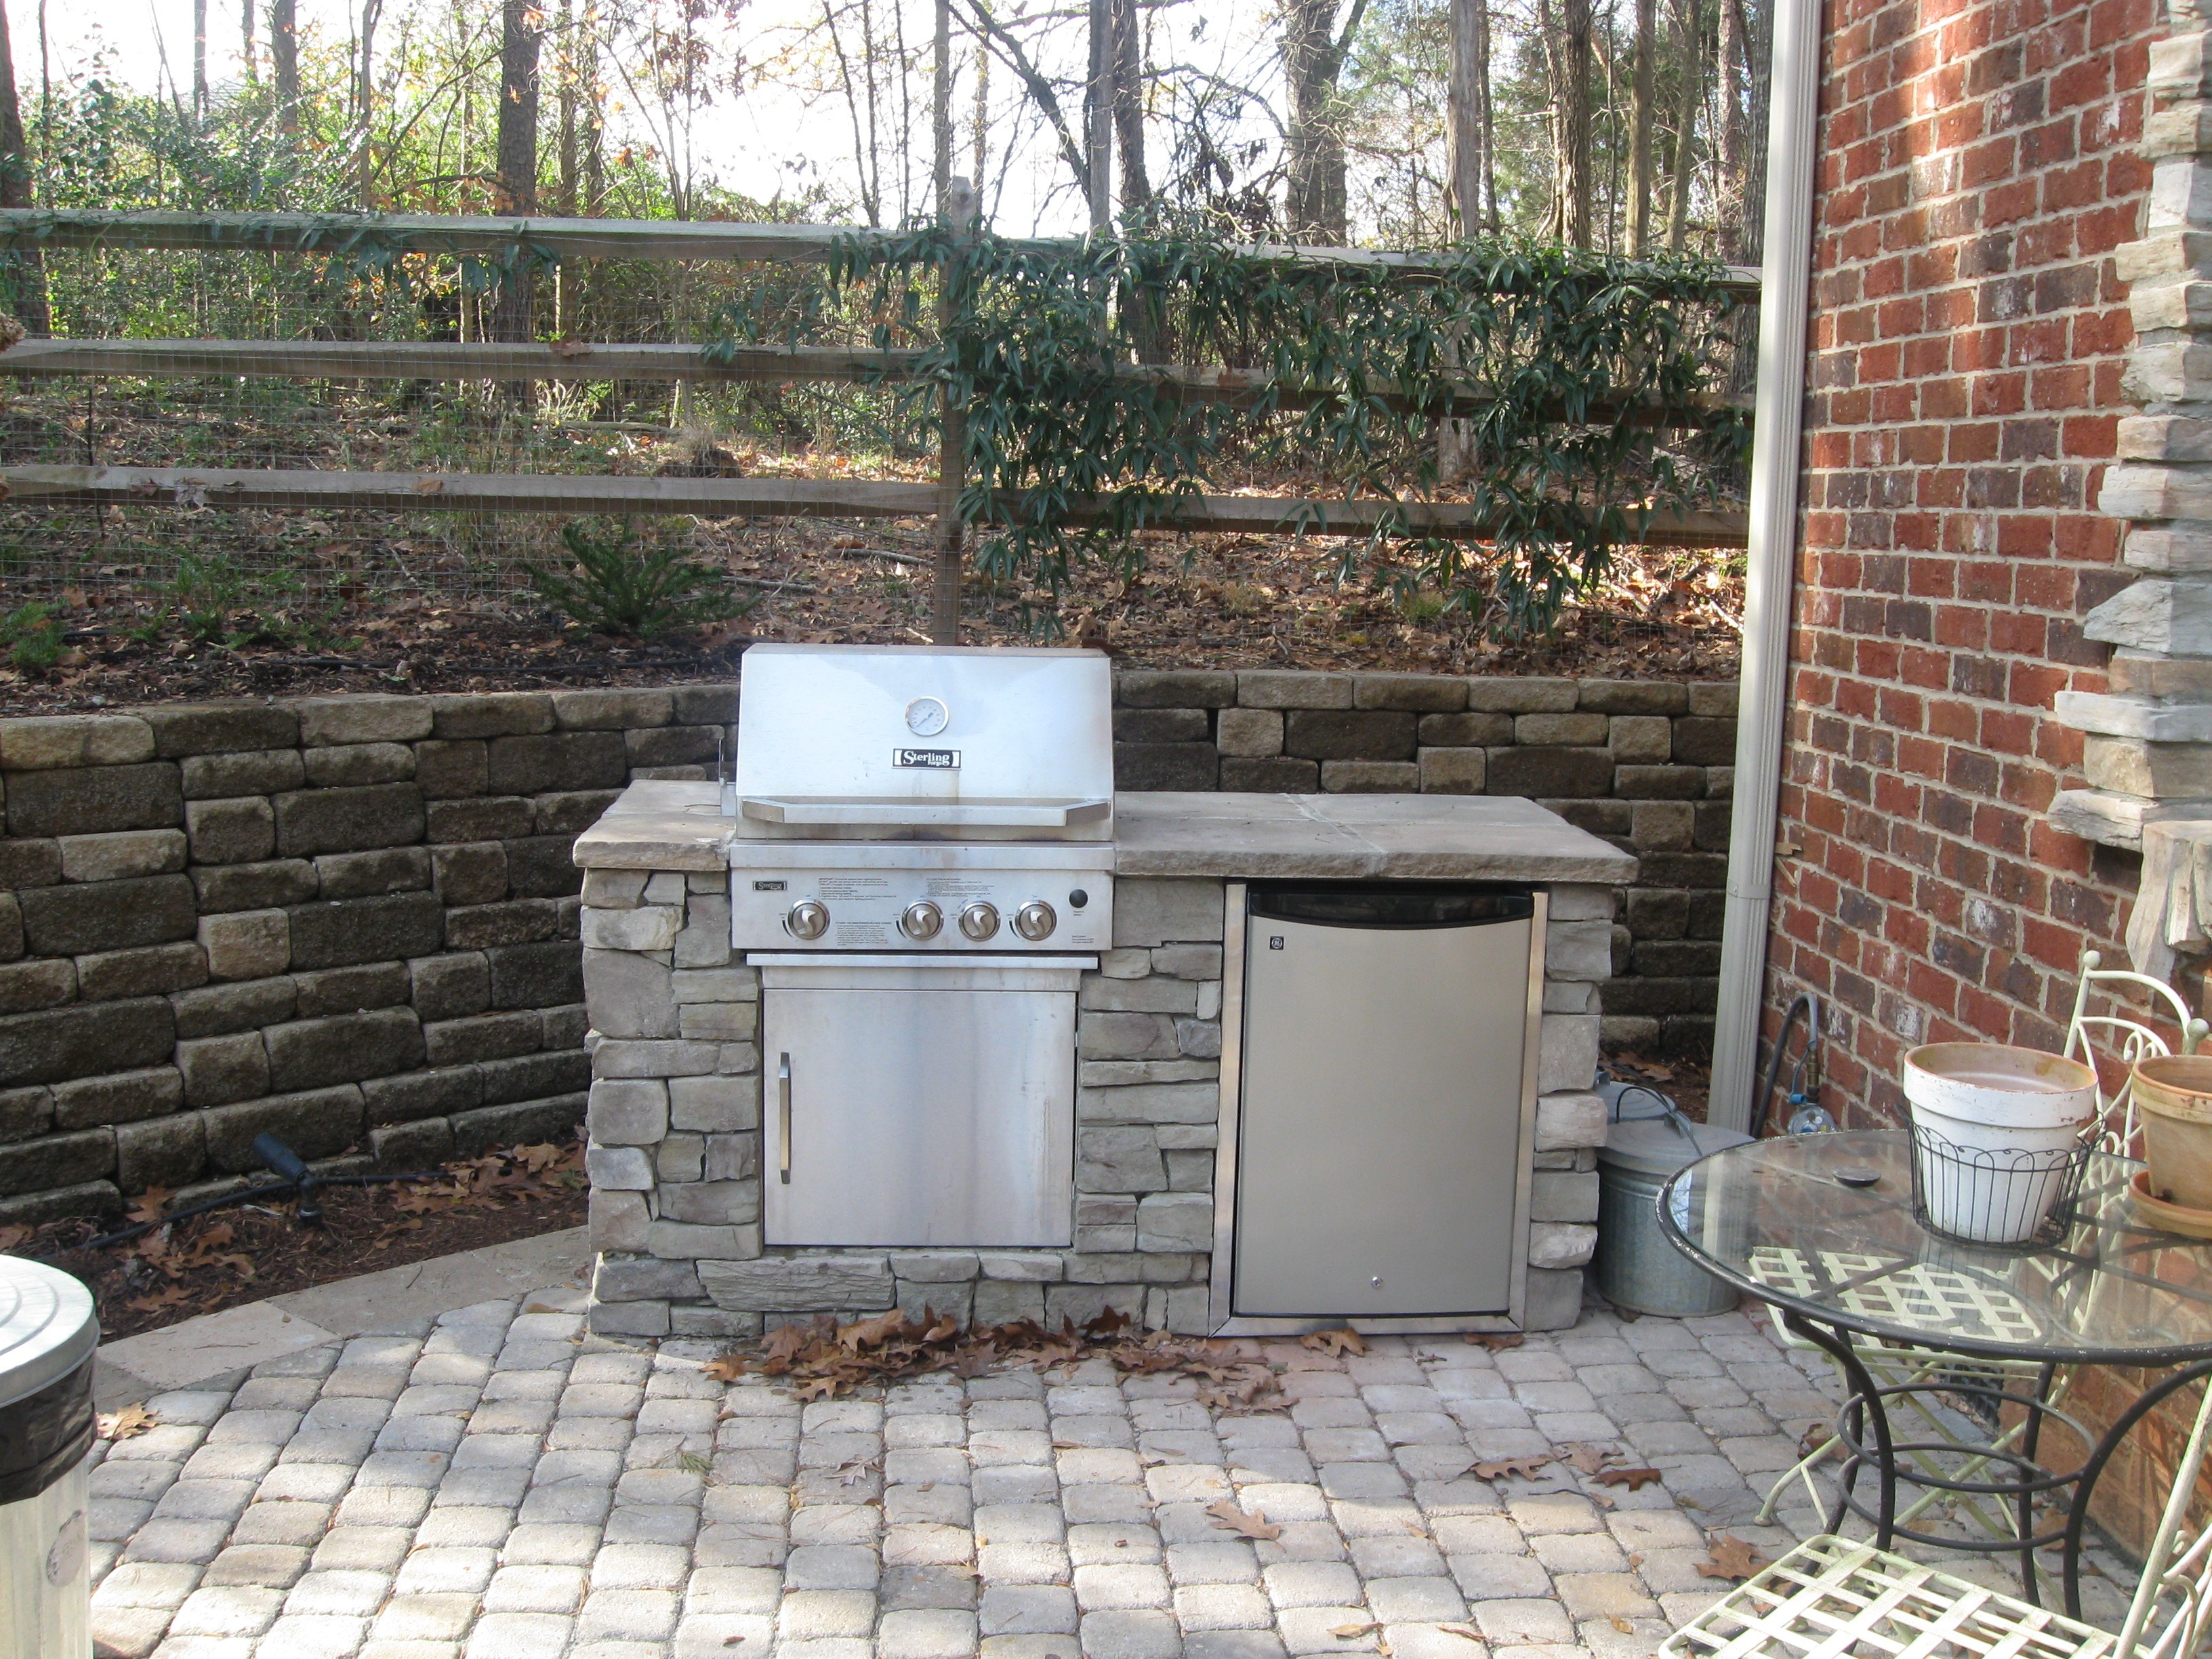 Incredible Outdoor Kitchens Fireplaces Patio 3264 x 2448 · 2928 kB · jpeg